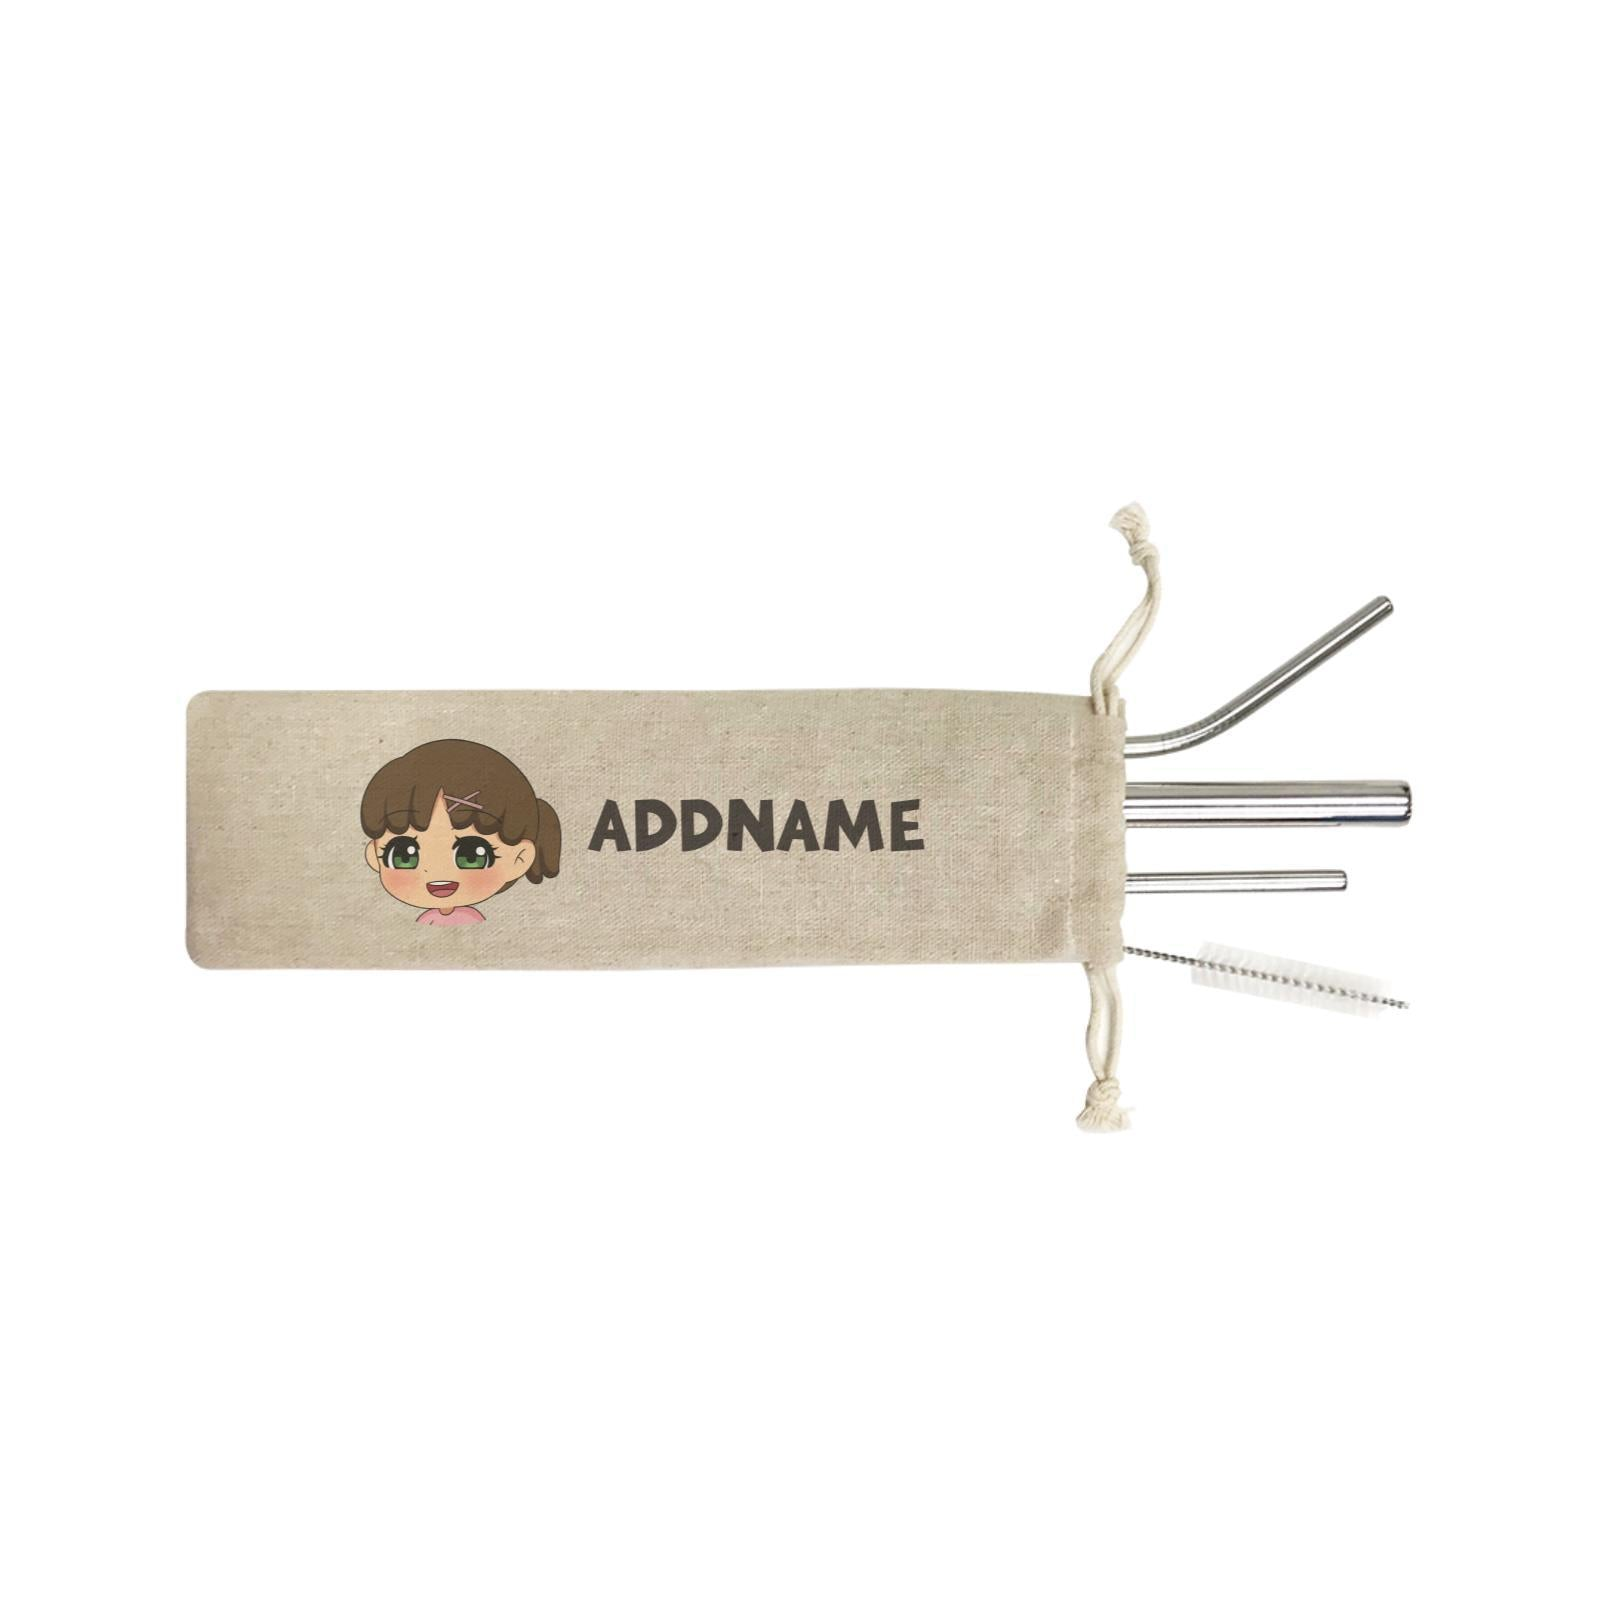 Children's Day Gift Series Little Girl Facing Right Addname SB 4-in-1 Stainless Steel Straw Set In a Satchel